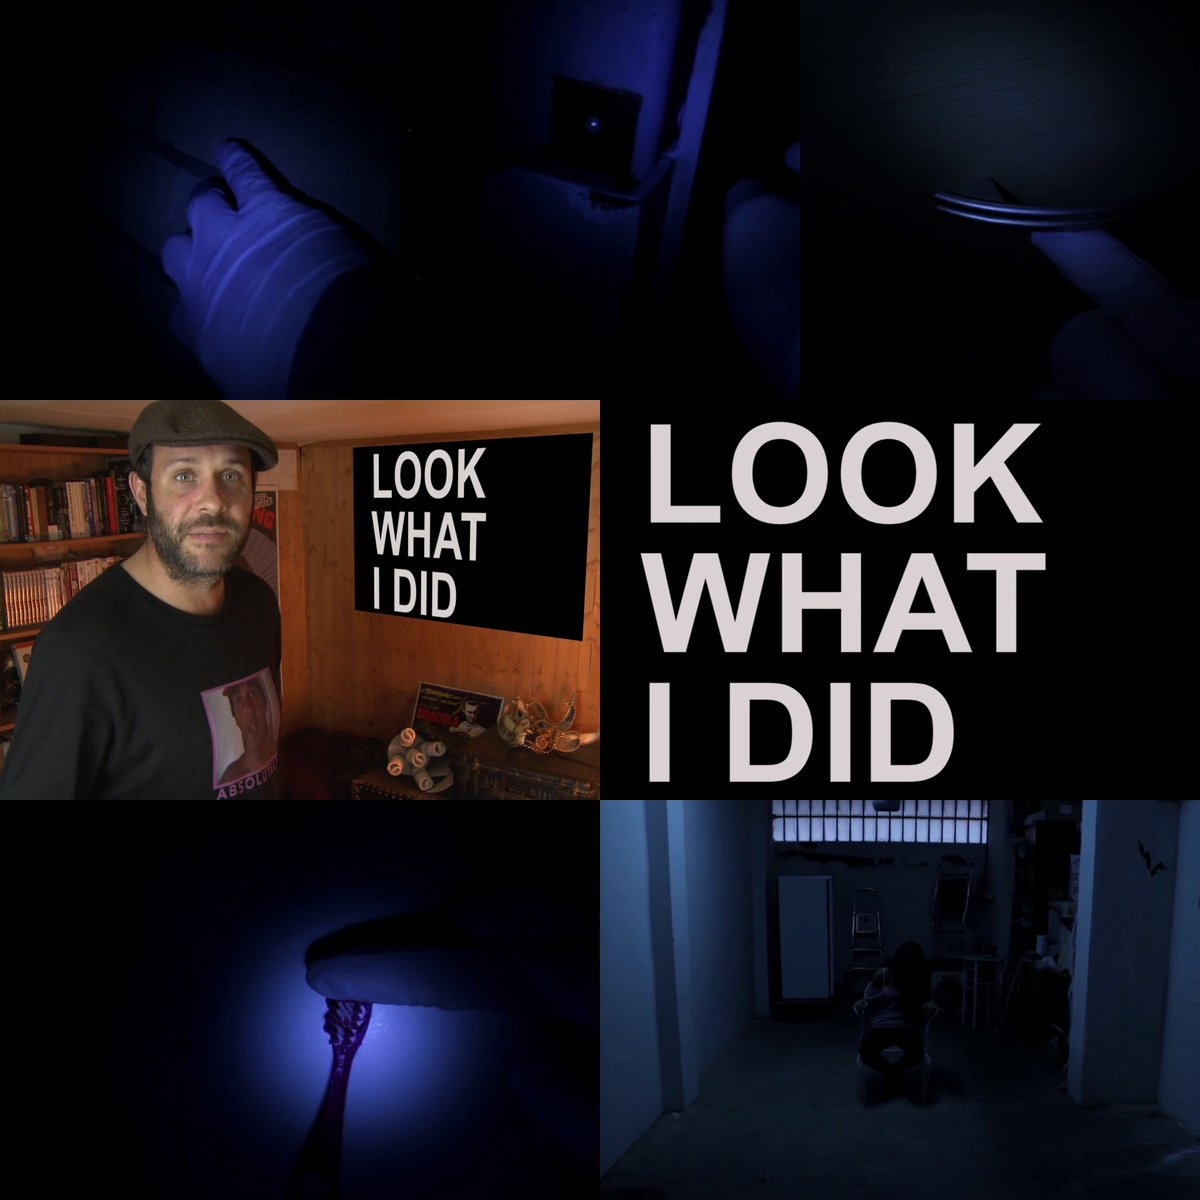 Indie Short Reviews - Halloween Special - LOOK WHAT I DID (2016) -  Review in link: https://t.co/kVpvjBSVXZ  #indieshortreviews #bestindiefilmsonyoutube #thedonttellshow #indiefilmreviewchannels #supportindependentfilm #scariestshorthorrorfilmsonyoutube https://t.co/WkjmIjr7qi